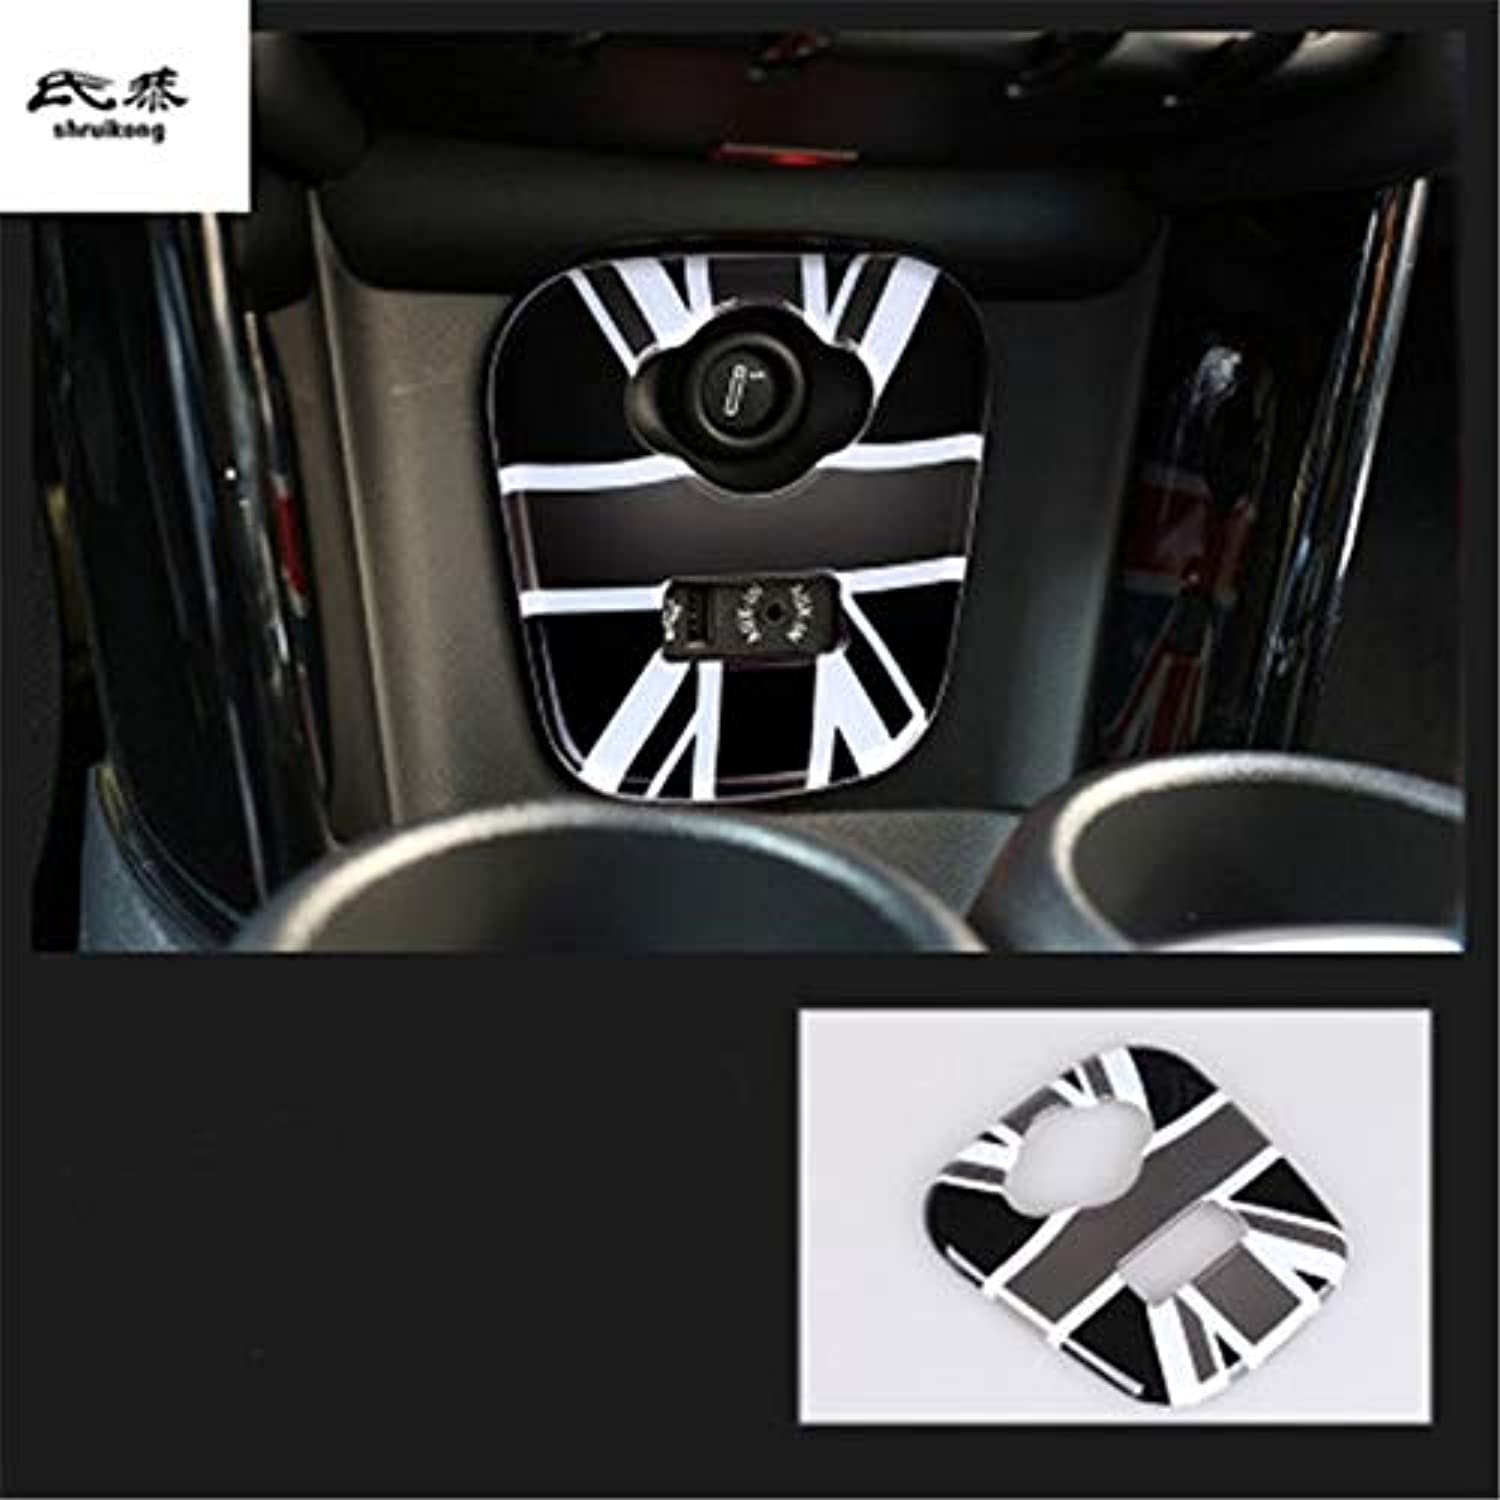 1pc PC Material Cigarette Lighter Panel Decoration Cover for Cooper F55 20152017   F56 20142017 20162018 F57  (color Name  Style 4)